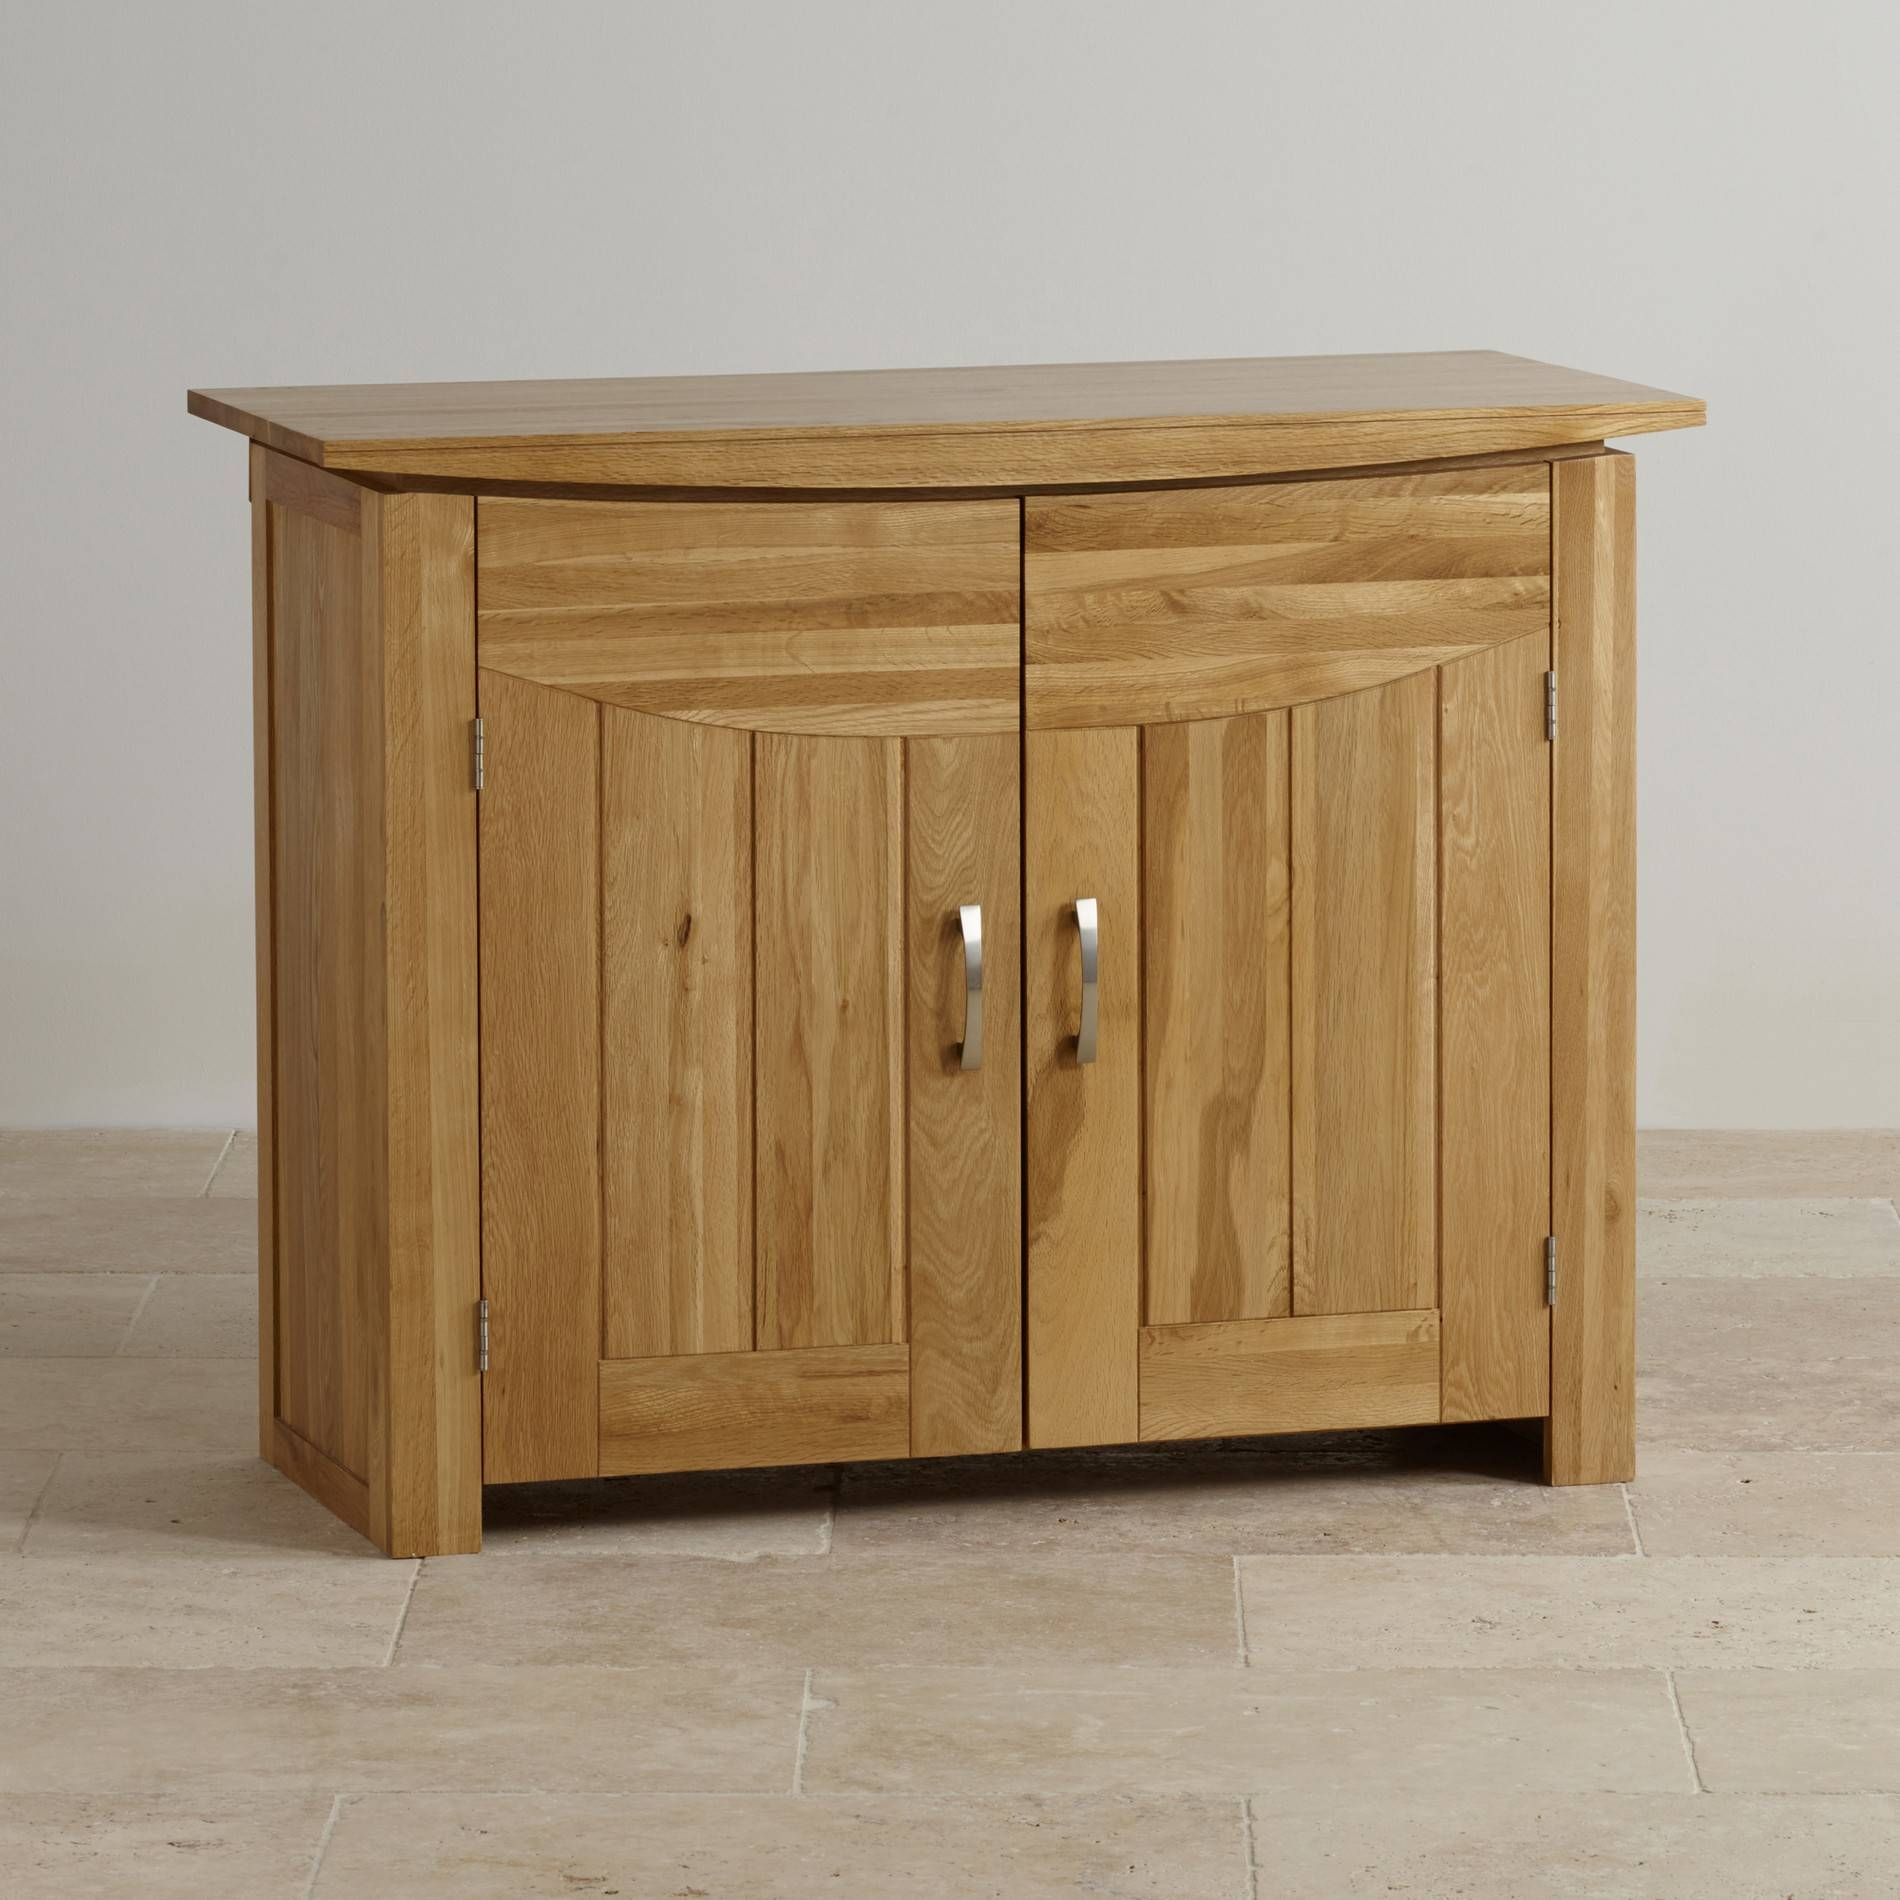 Sideboards | 100% Solid Hardwood | Oak Furniture Land inside Light Oak Sideboards (Image 18 of 30)